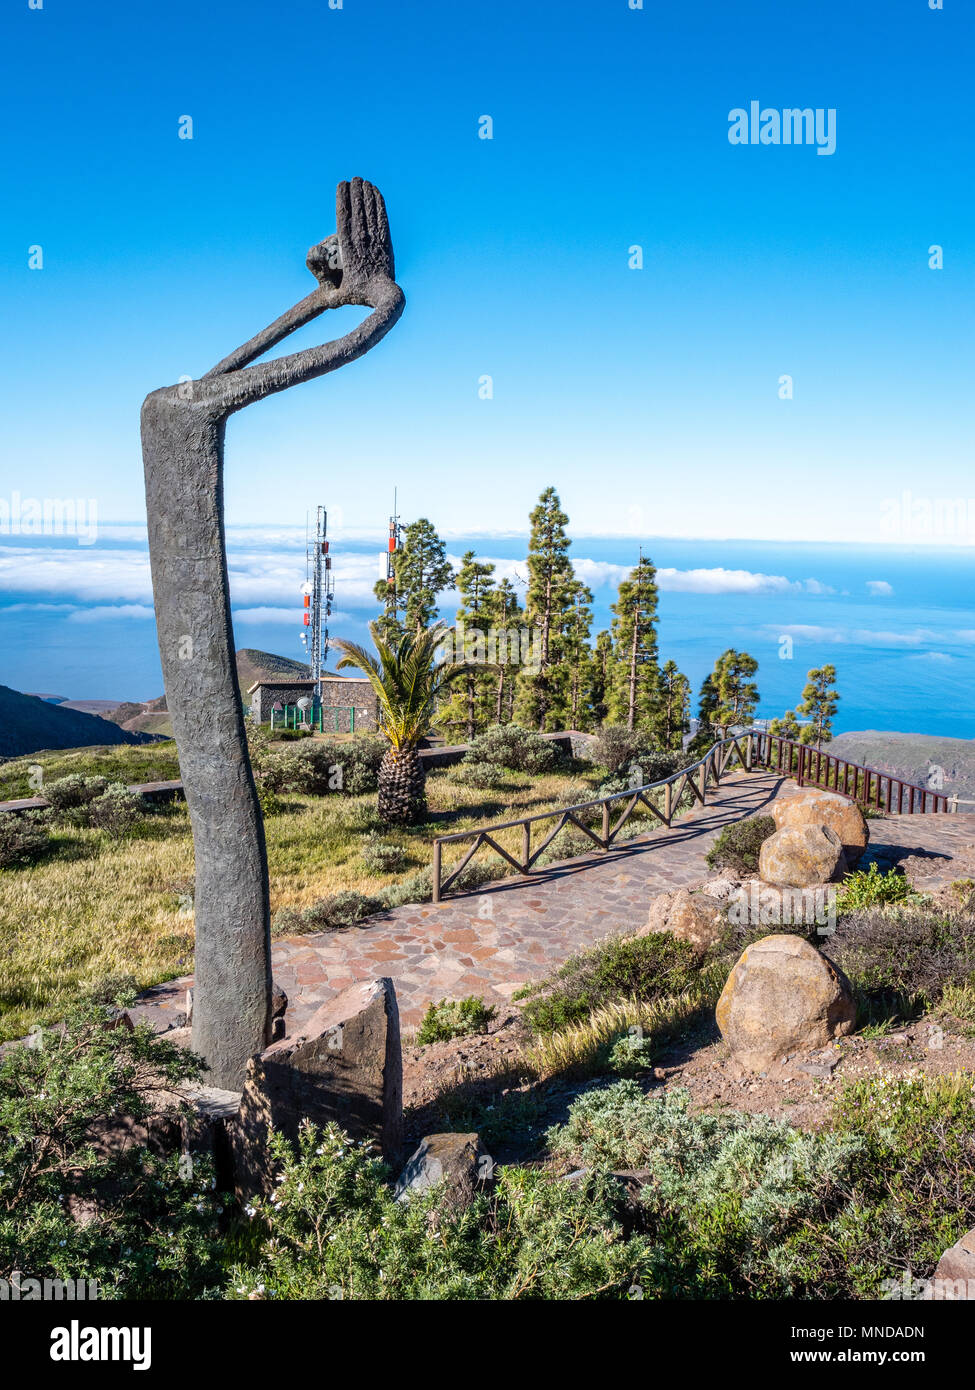 Mirador de Igualero with Homage to Silbo sculpture in honour of the island's whistling language - Garajonay National Park of La Gomera Canary Islands - Stock Image